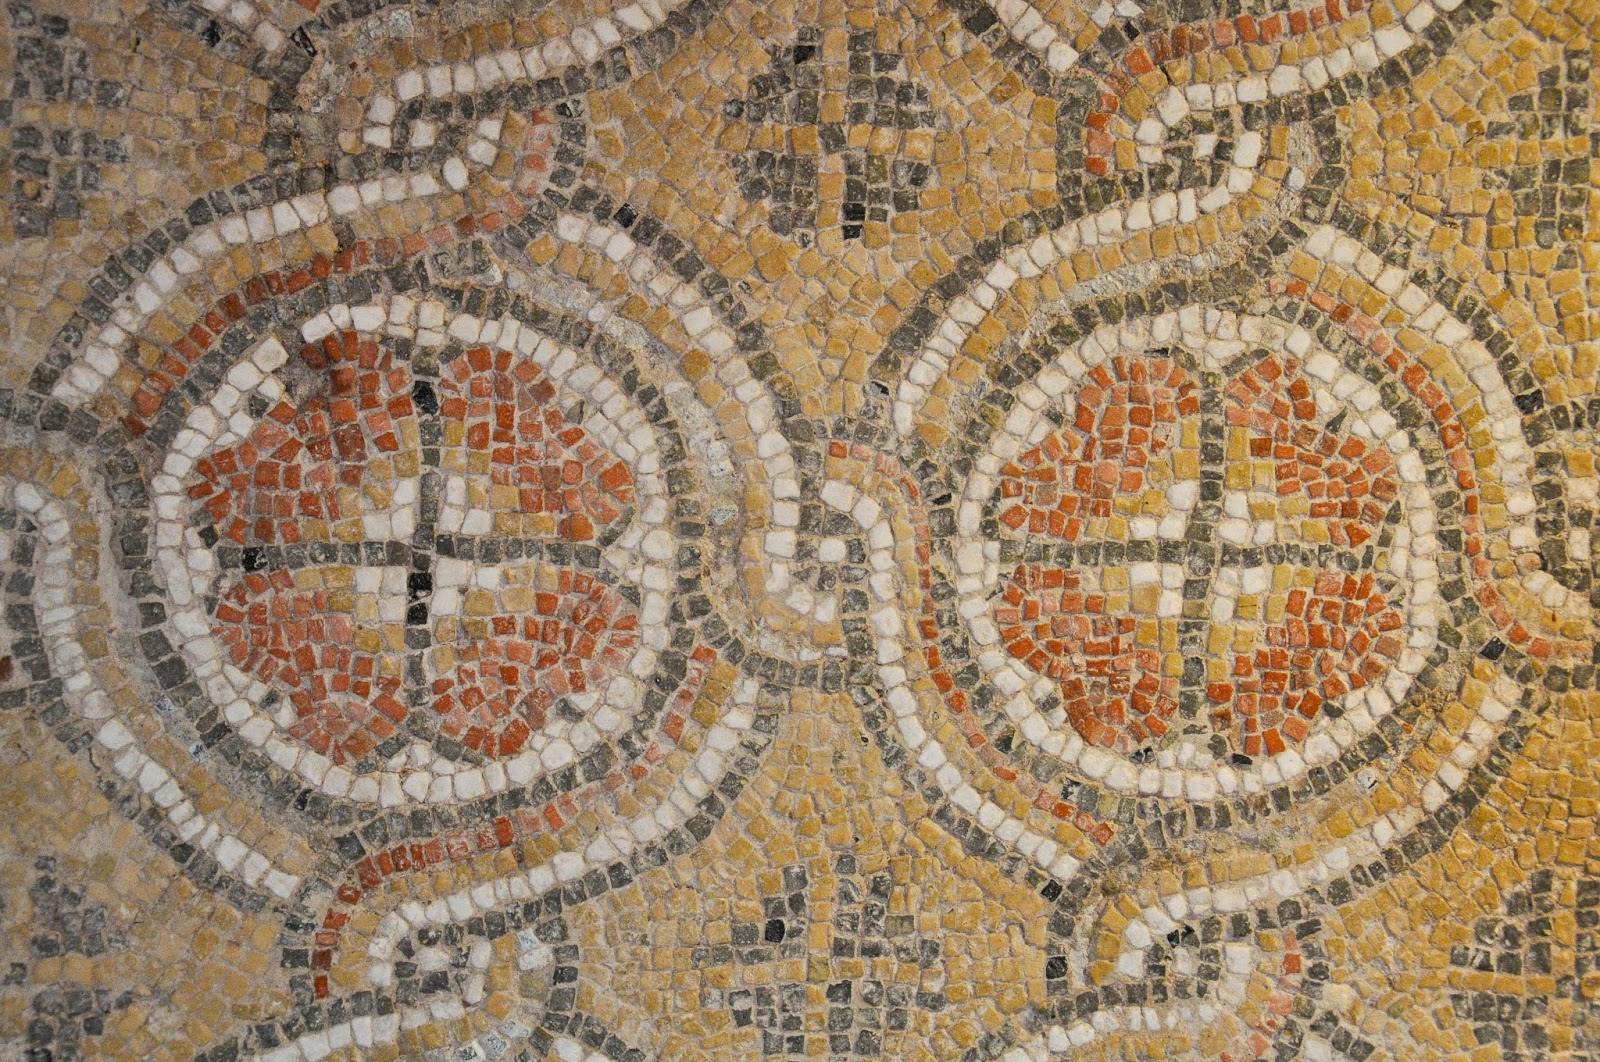 Mosaics from the early Christian Episcopal Basilica of the ancient Odessos - 5th century, Aladza Monastery, Varna, Bulgaria